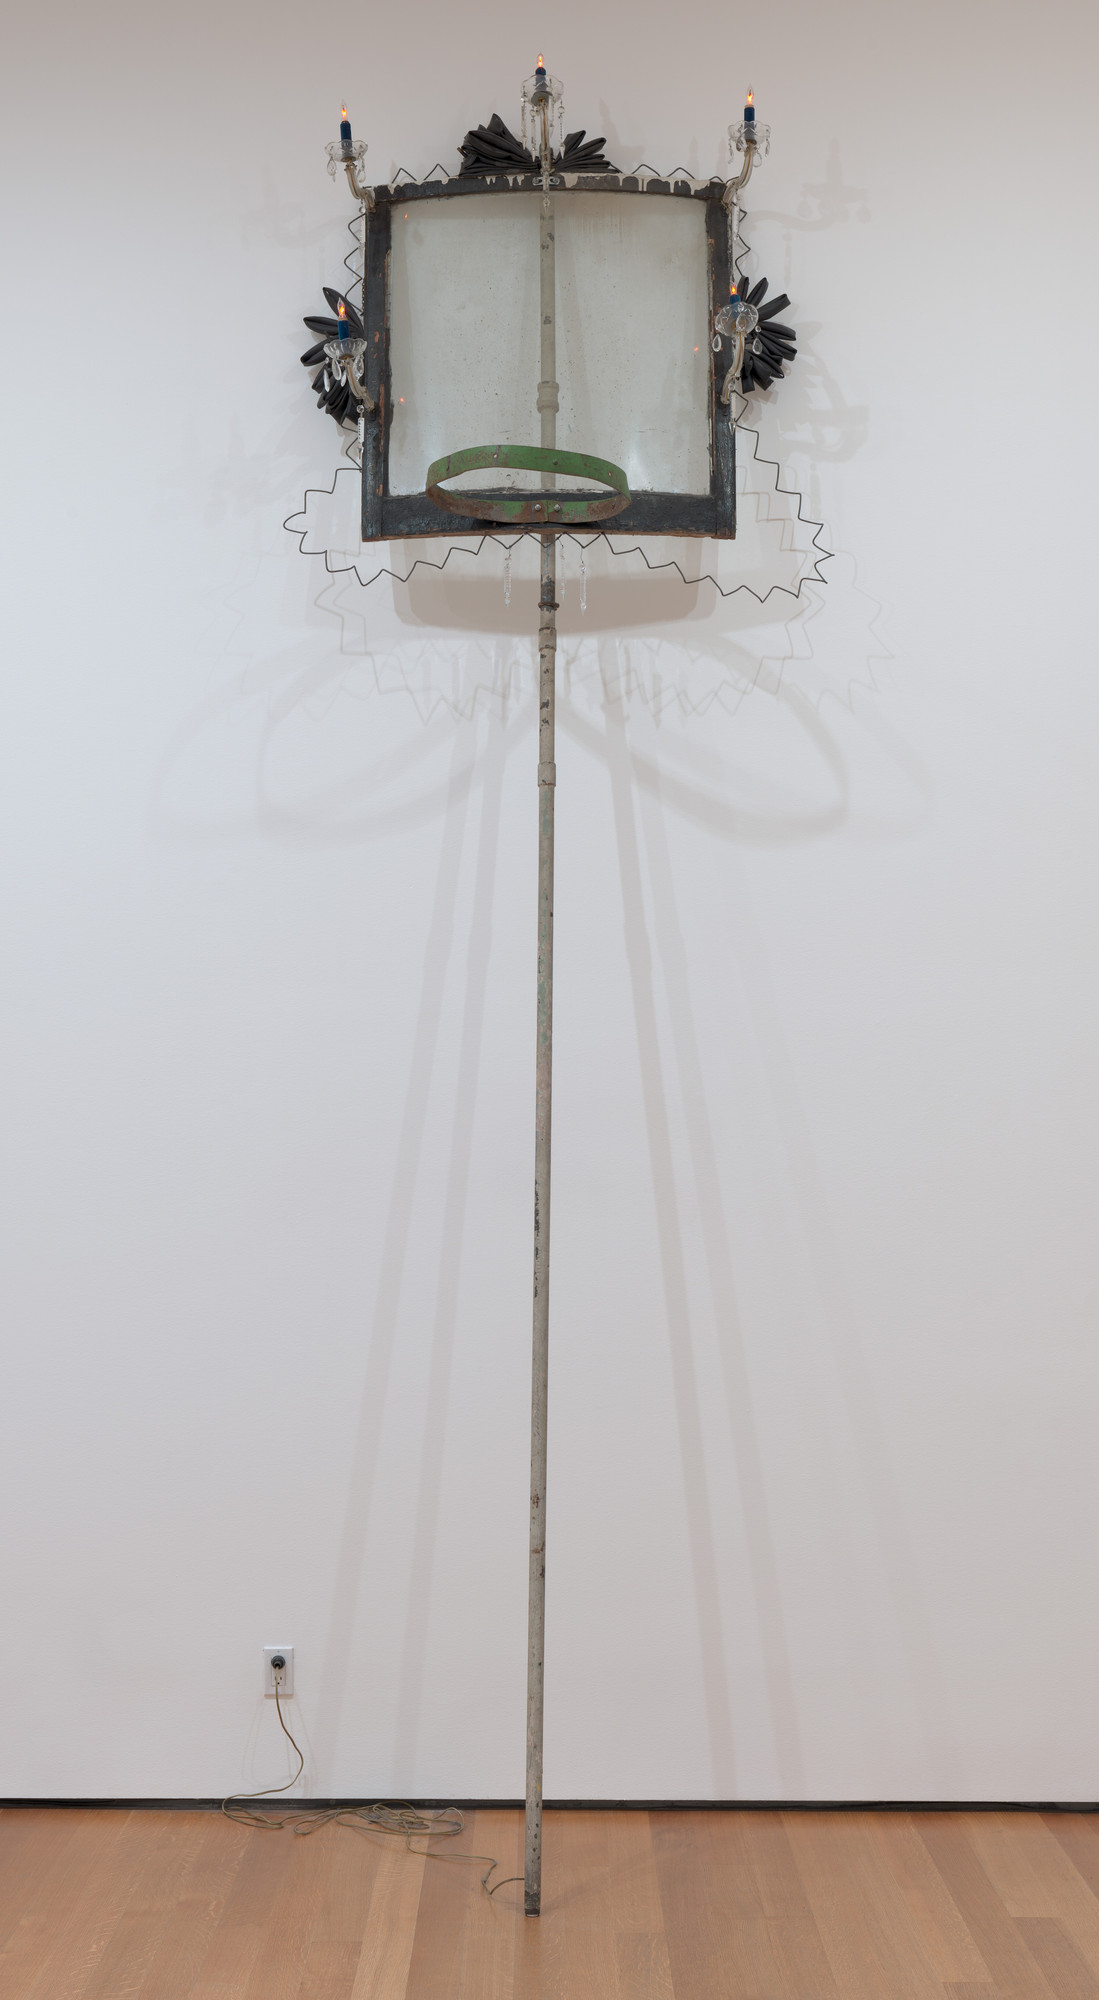 David Hammons. High Falutin'. 1990